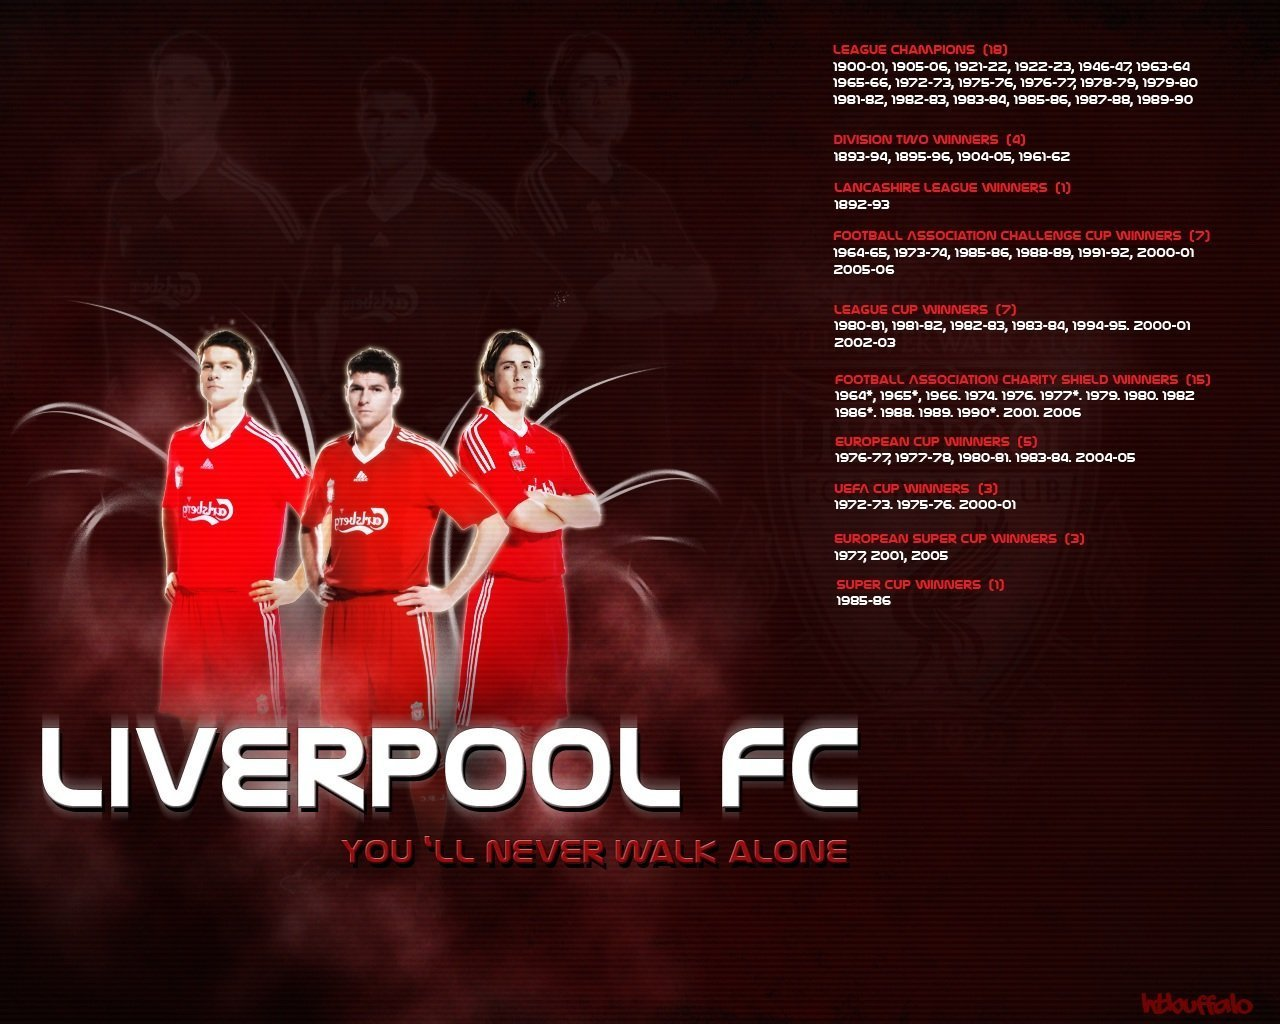 pin wallpaper liverpool awesome - photo #11